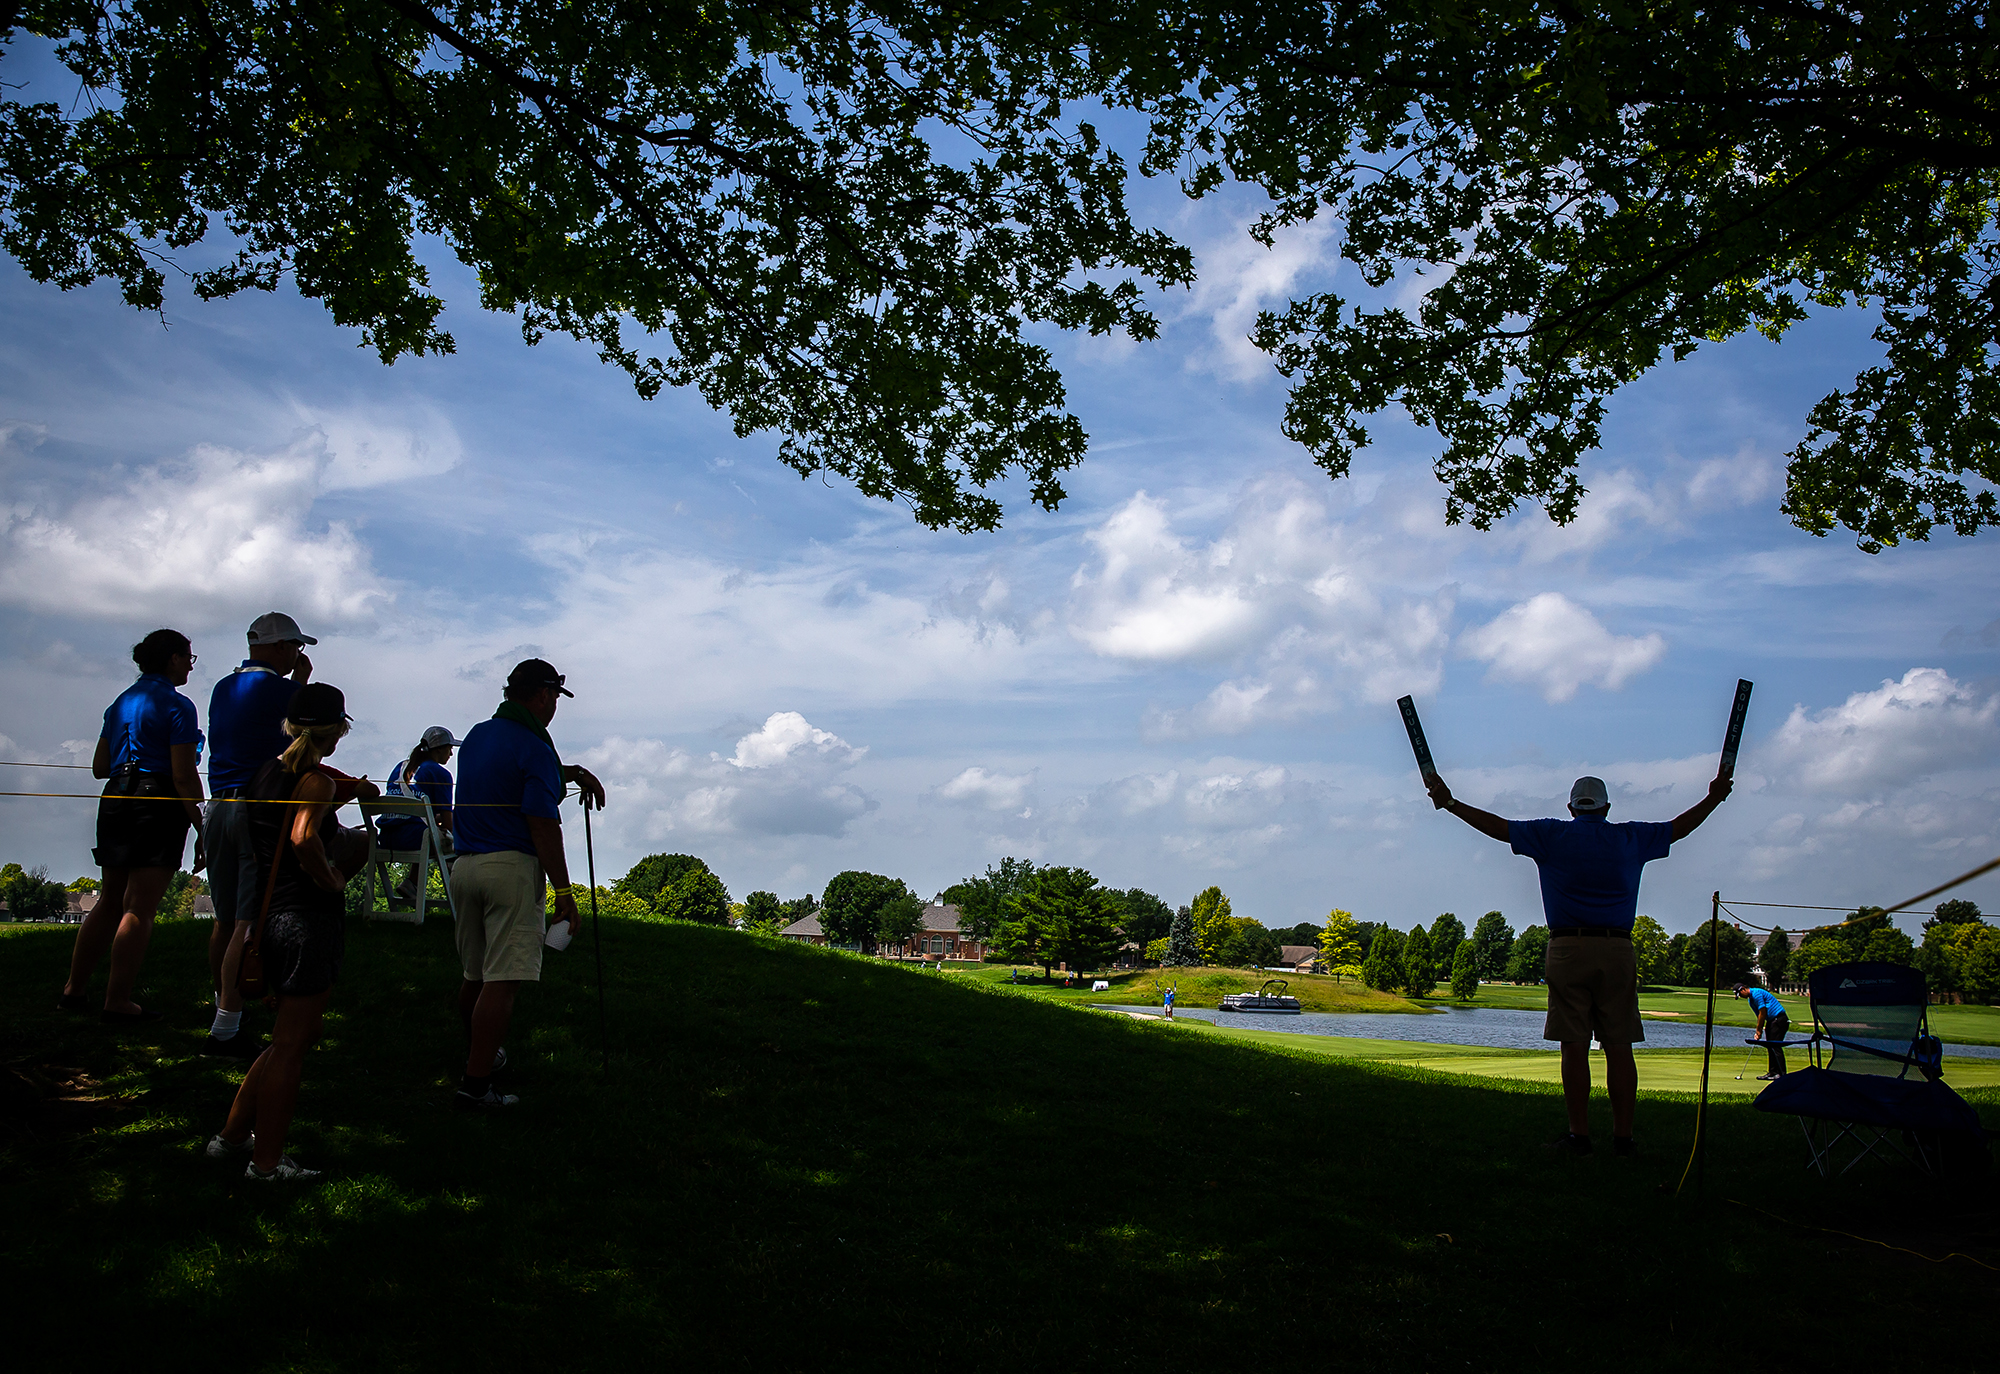 Volunteers signal the crowd to be quiet as golfers putt on the No. 9 hole during the Lincoln Land Championship presented by LRS at Panther Creek Country Club, Sunday, July 1, 2018, in Springfield, Ill. [Justin L. Fowler/The State Journal-Register]